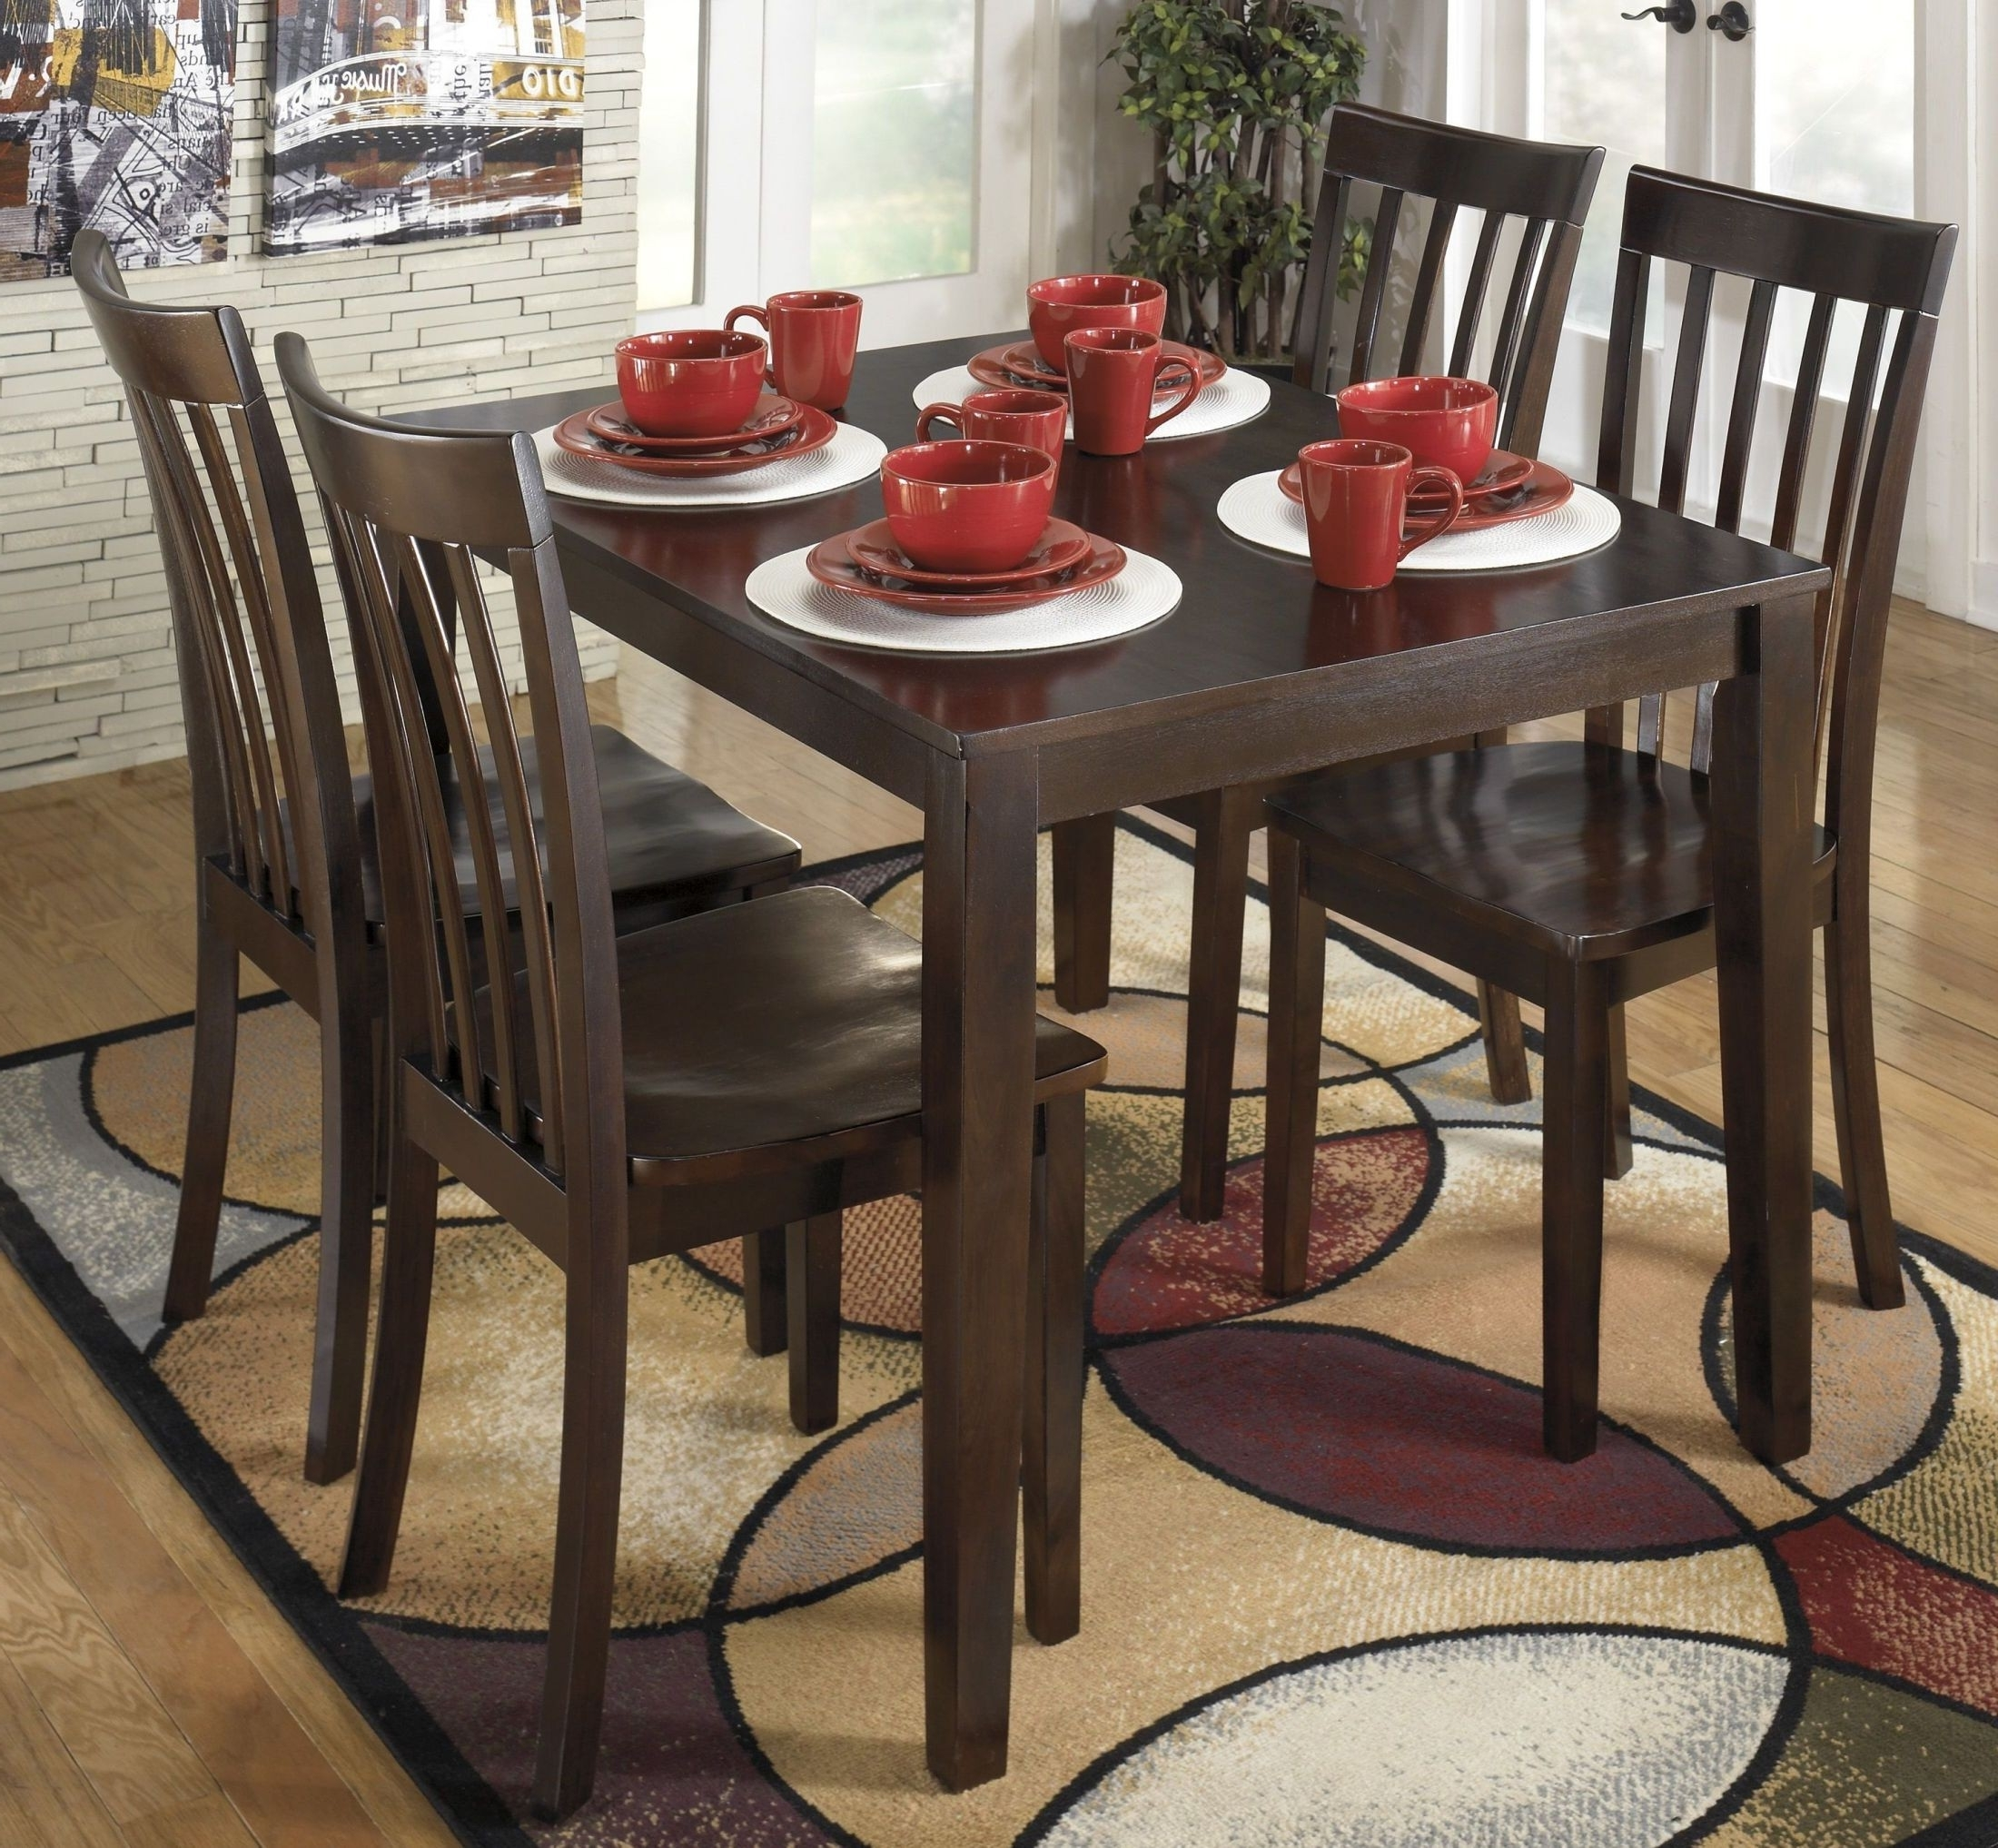 Recent Hyland 5 Piece Counter Sets With Bench Intended For Signature Designashley Hyland 5 Piece Casual Dining Set – Hyland (View 8 of 25)